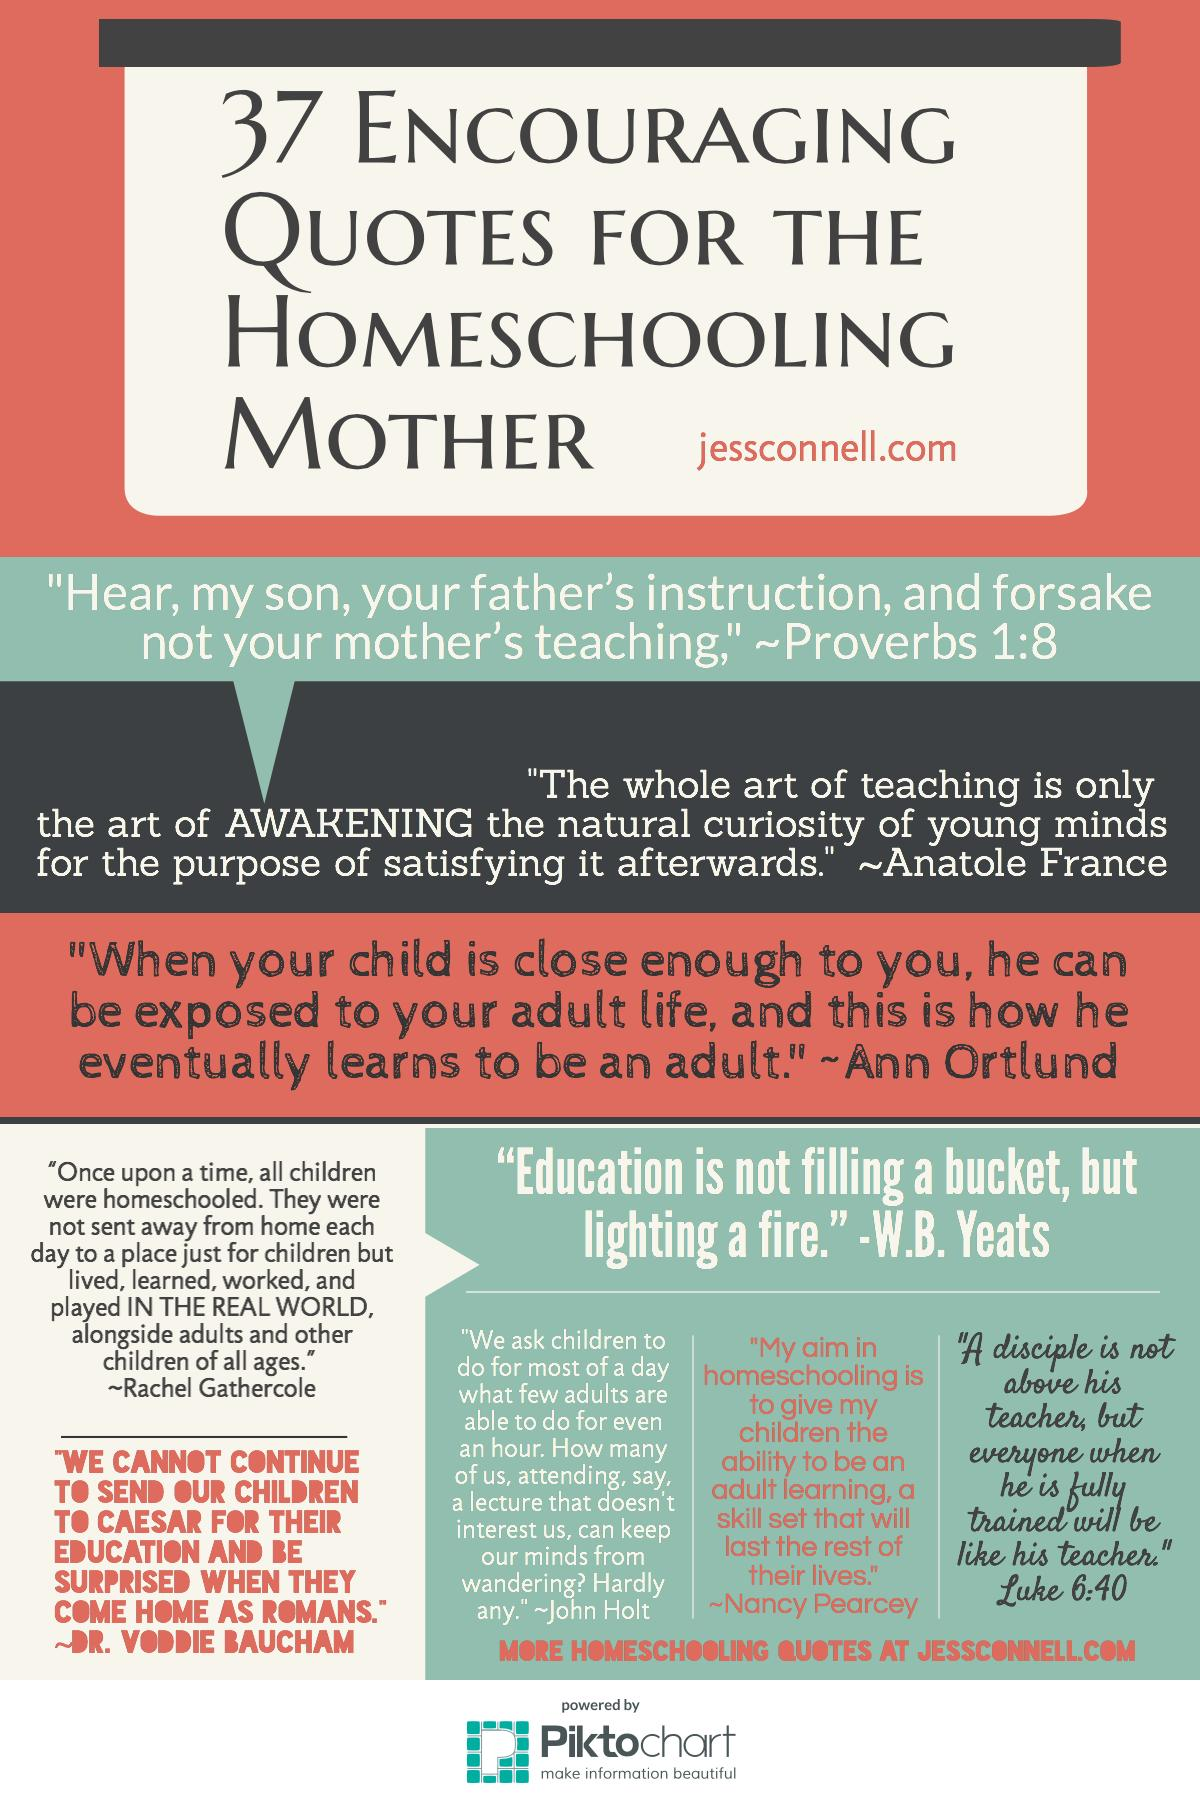 Homeschool Quotes 37 Encouraging Quotes for the Homeschooling Mother   Jess Connell Homeschool Quotes